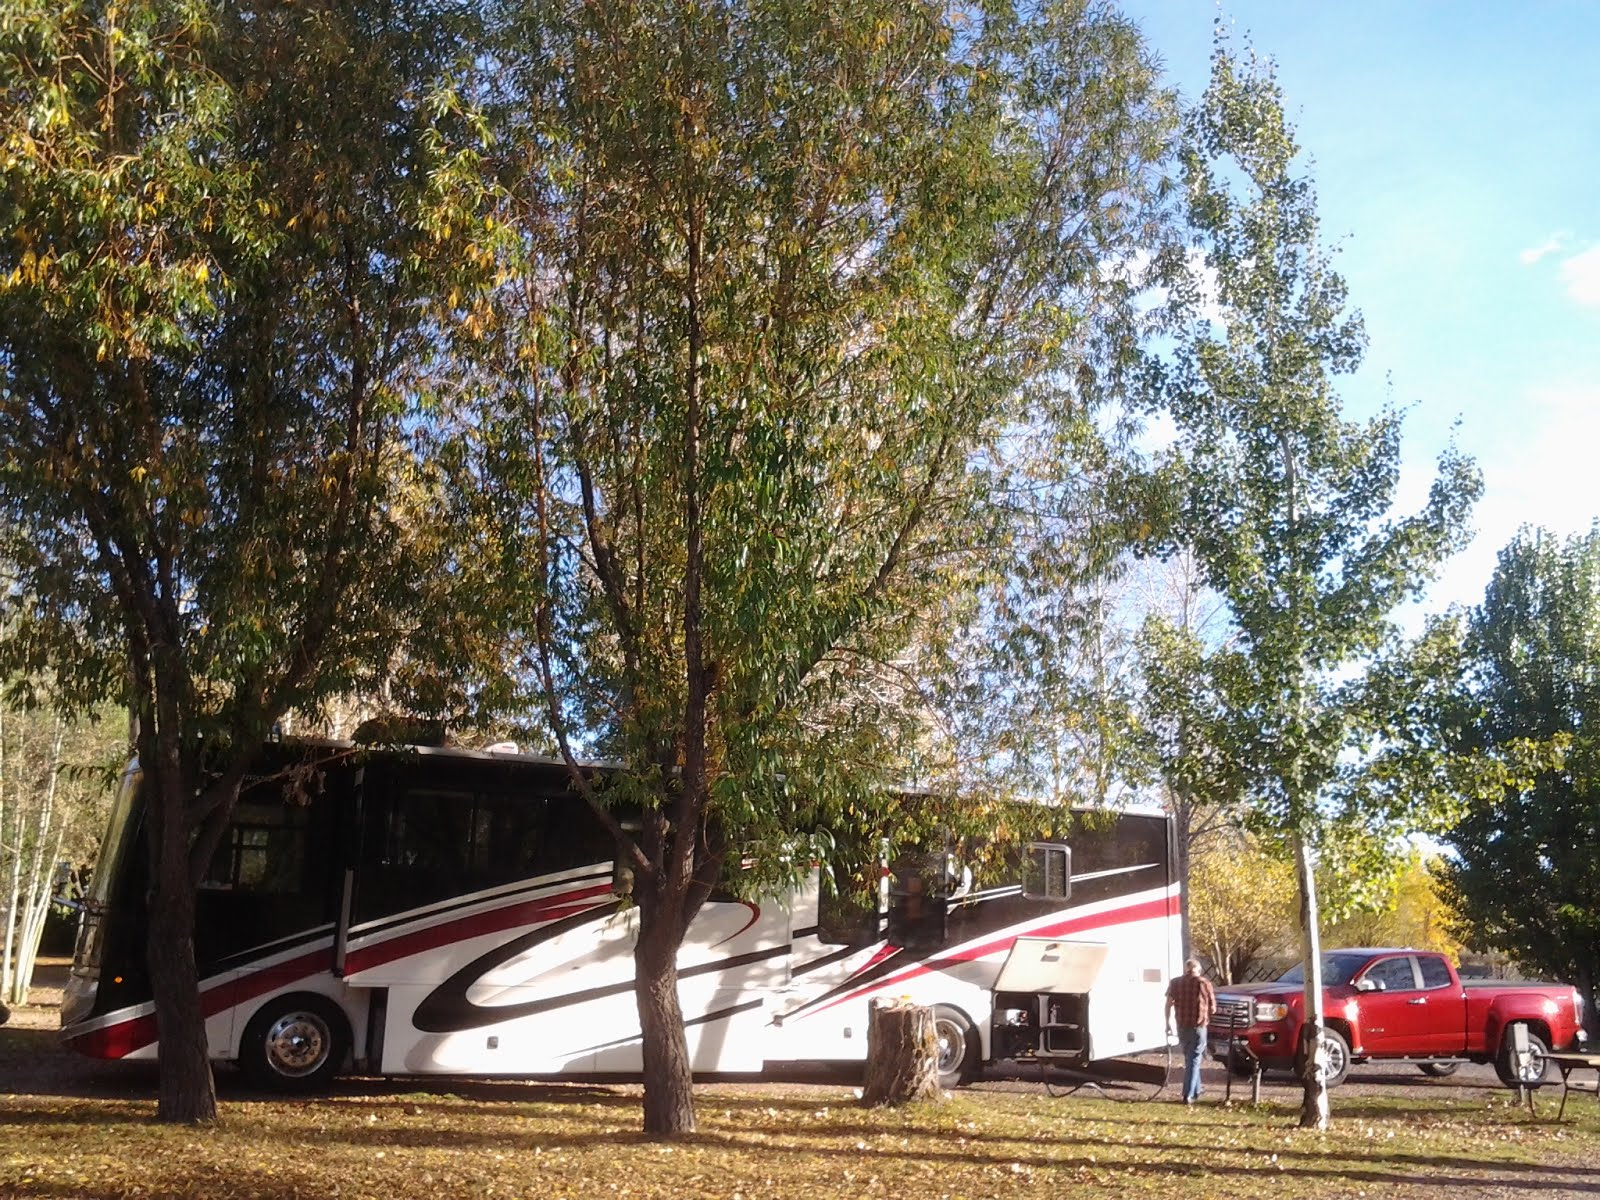 2015 Evanston WY, Our Excursion coach and Canyon